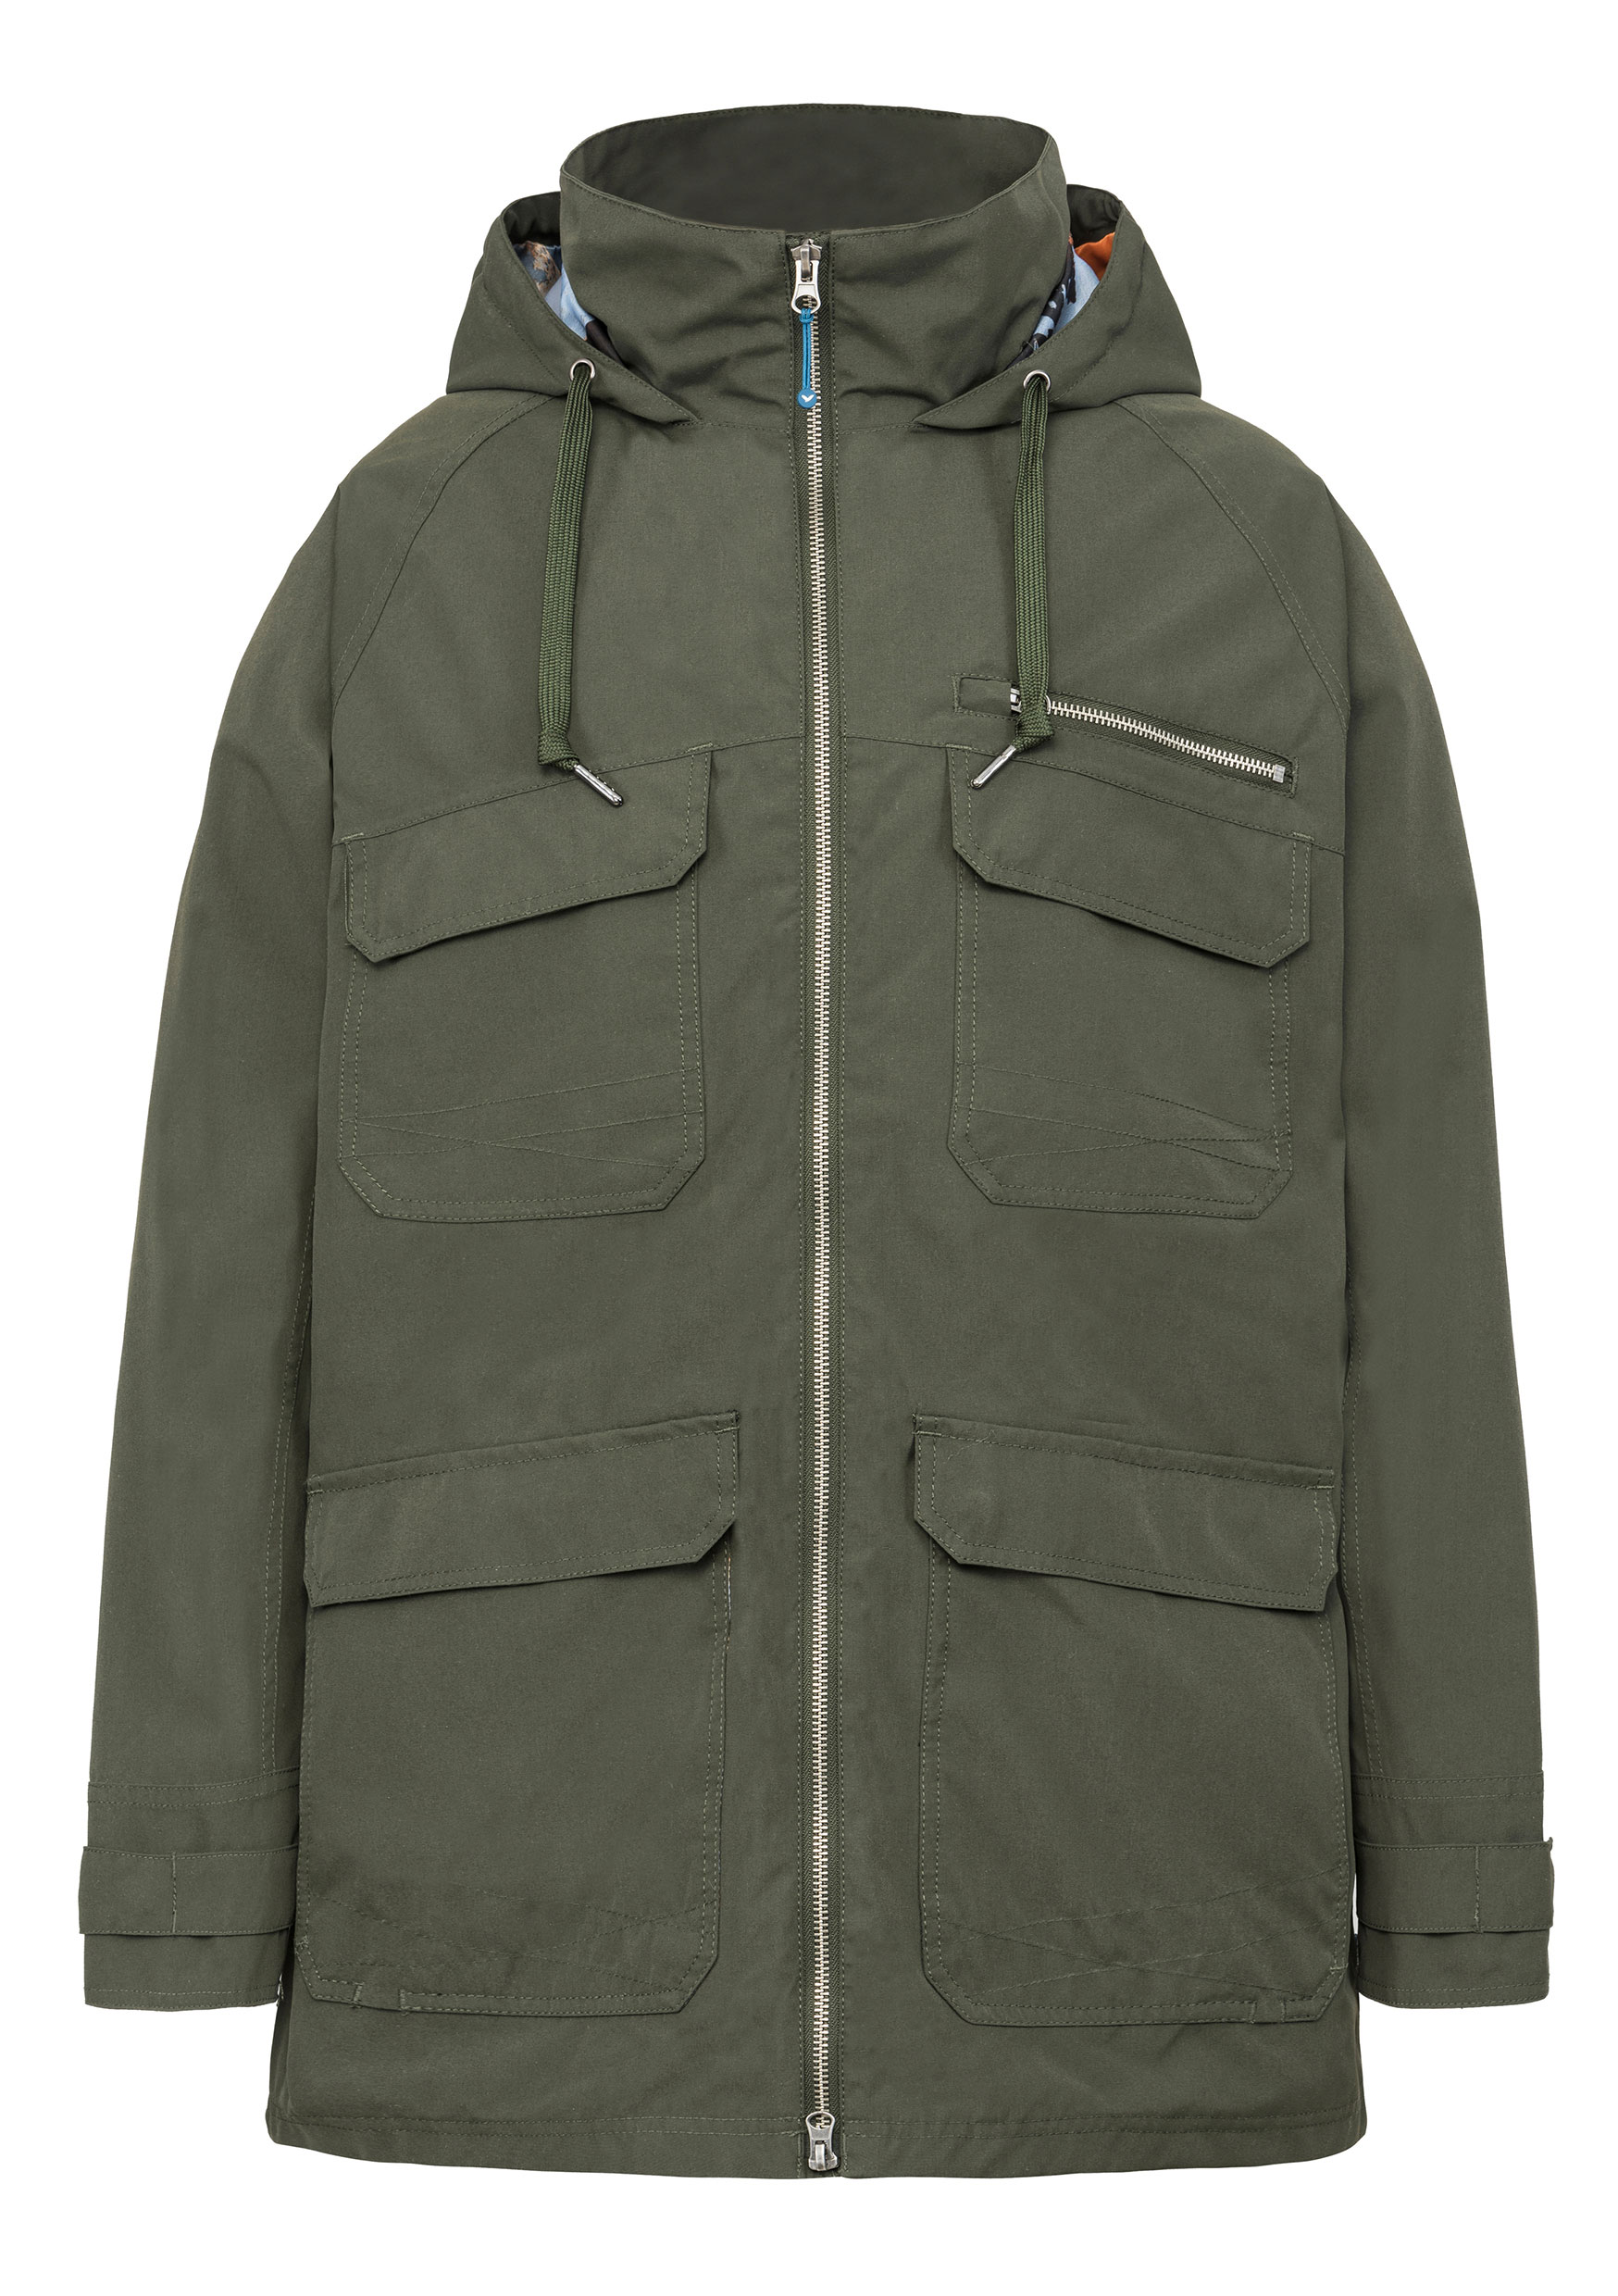 Collaboration Mens Alchiba Anorak Rainbird Clothing